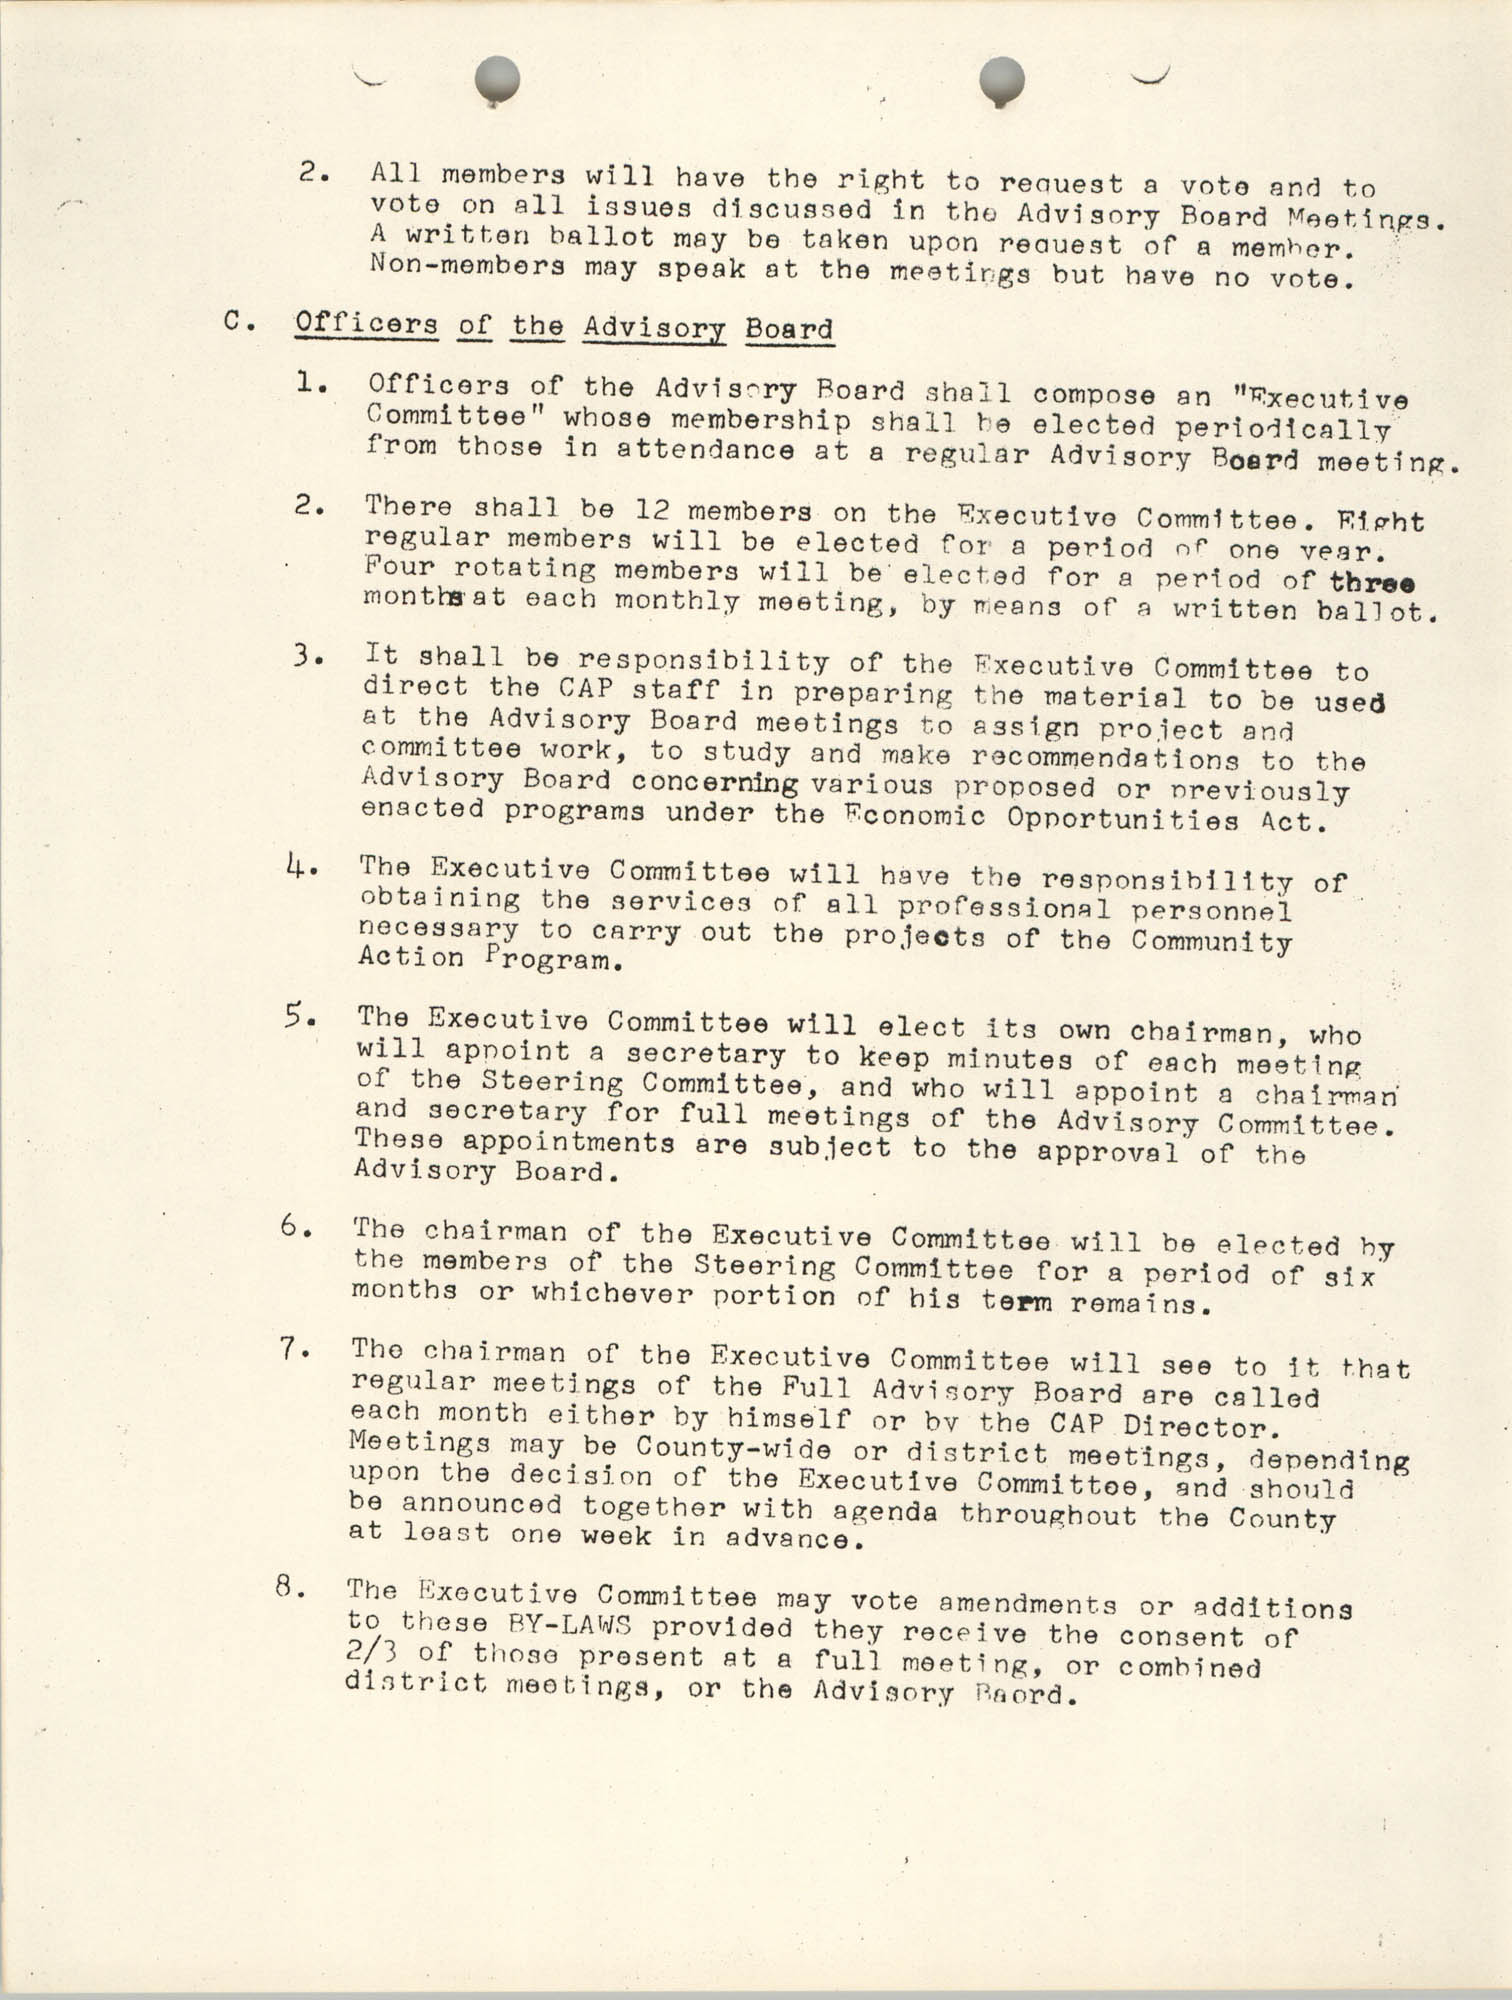 By-Laws of the Advisory Board, Page 2